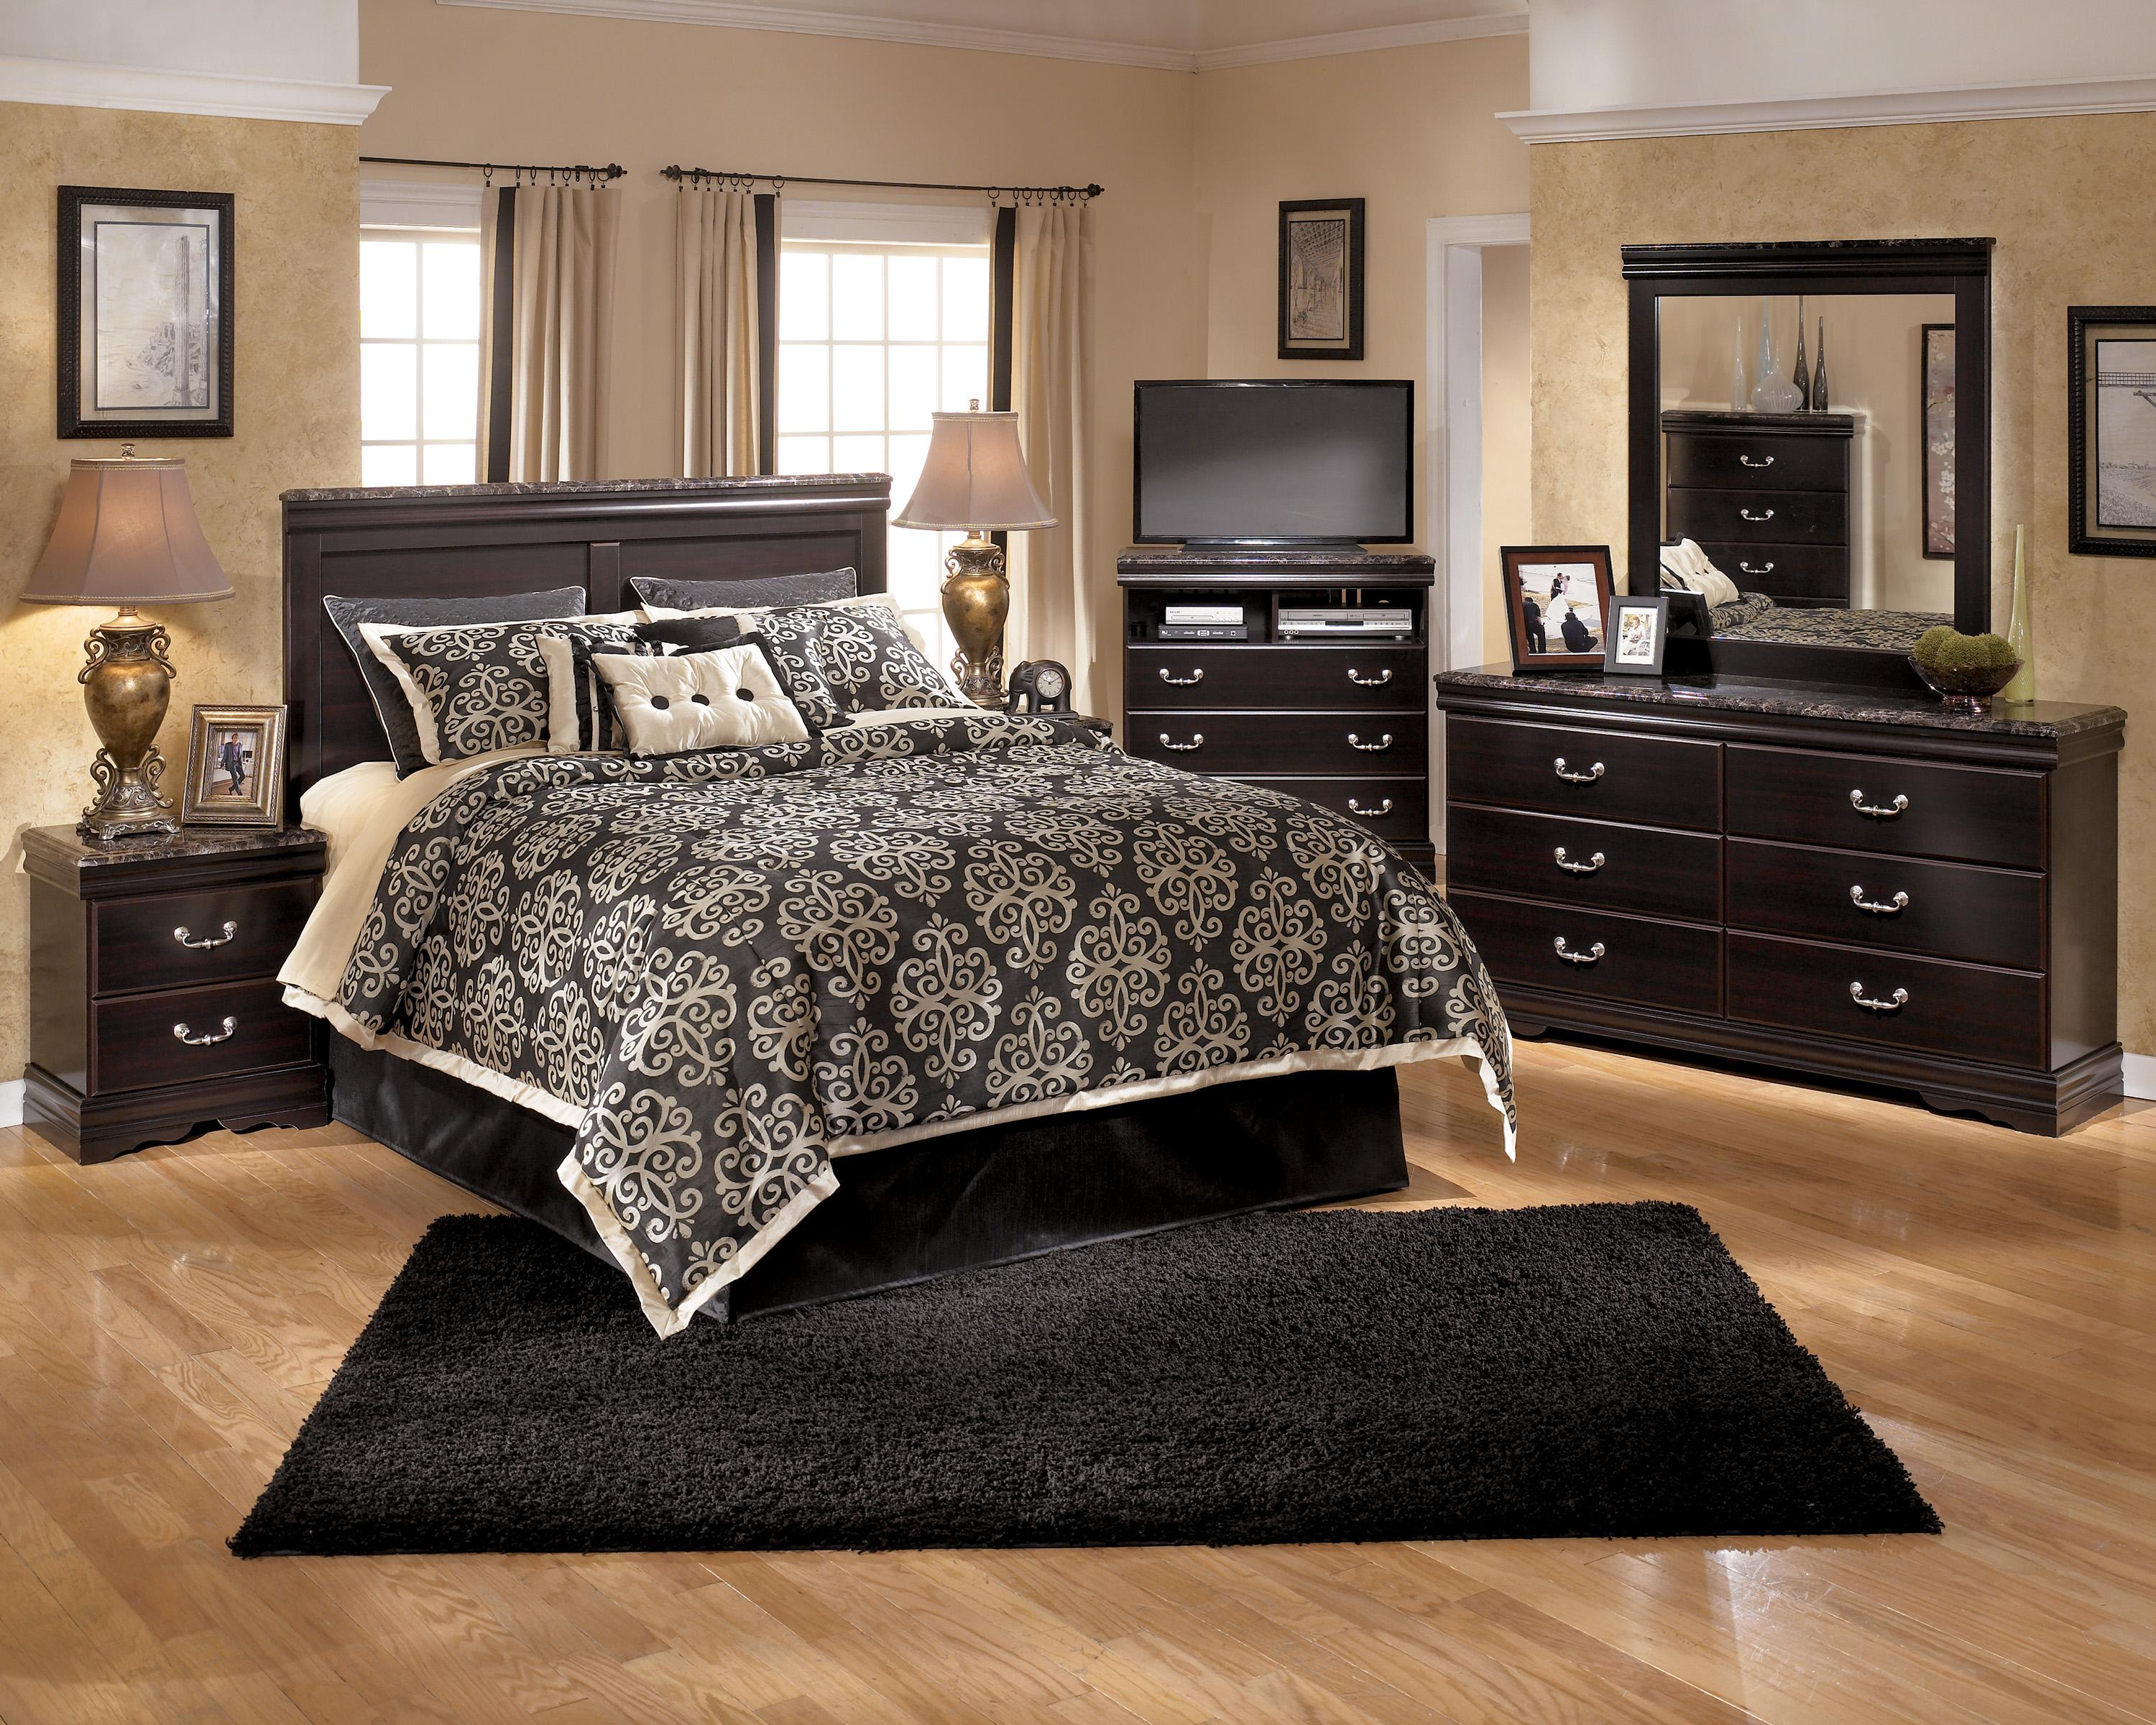 Signature Design By Ashley Esmarelda Queen Storage Bed With 2 Footboard  Drawers U0026 Faux Marble Trim | Michaelu0027s Furniture Warehouse | Platform  Beds/Low ...